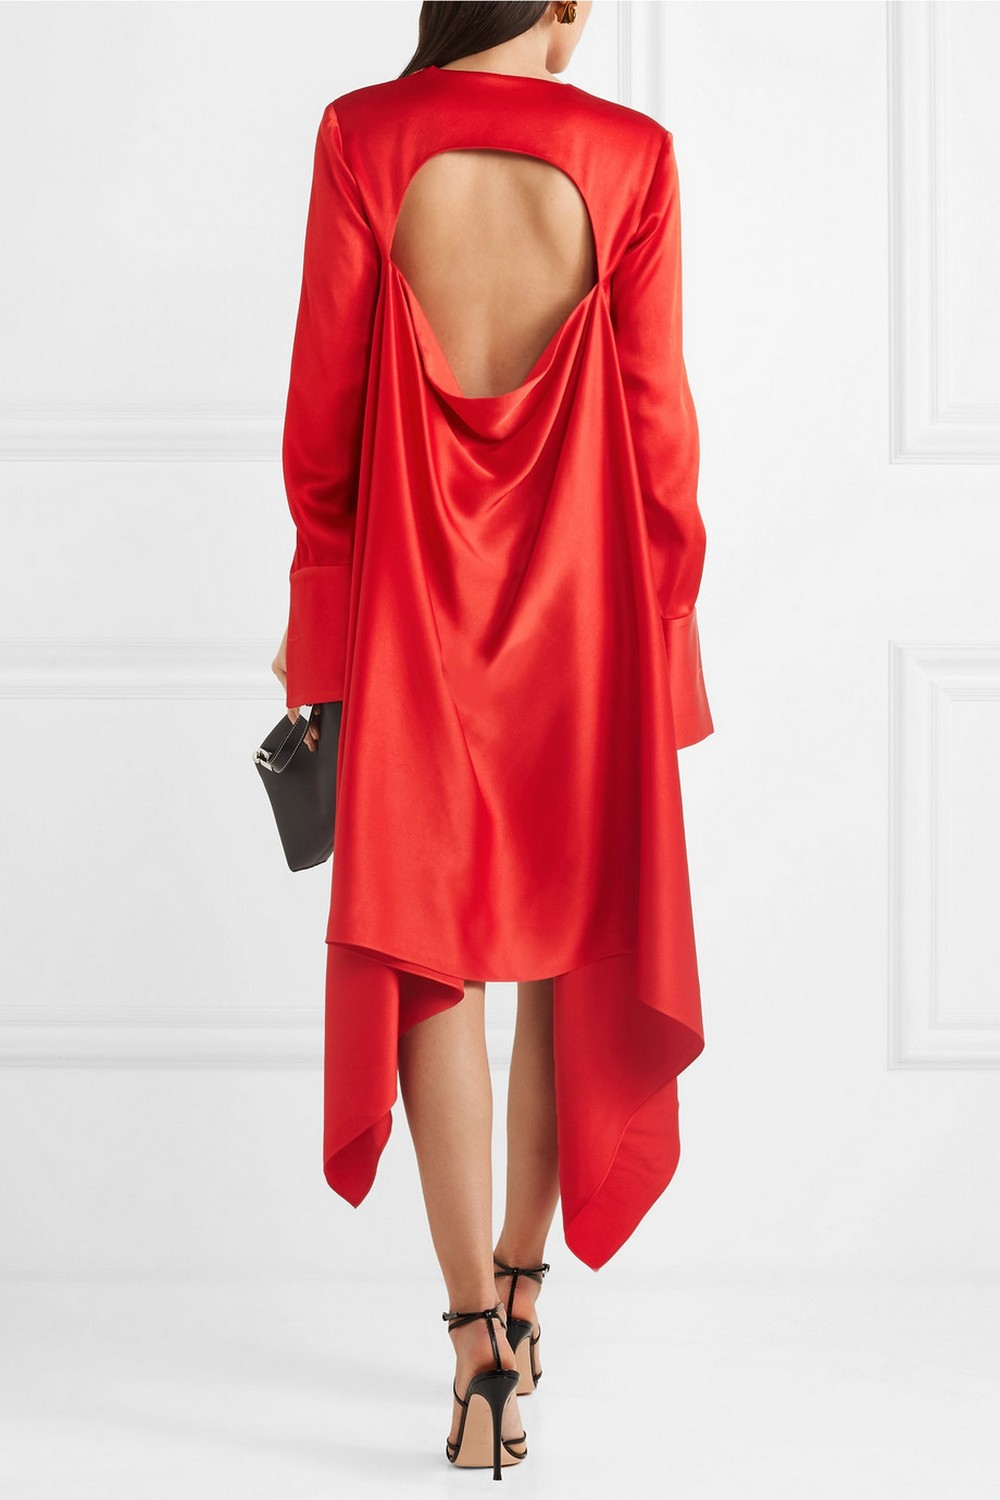 This satin midi dress with exposed back by Monse (around S$3,009 via Net-a-Porter) totally one-ups what Rachel wore, but references it perfectly with the cut-out. We love the elegant long sleeves, and how it swishes around the legs.